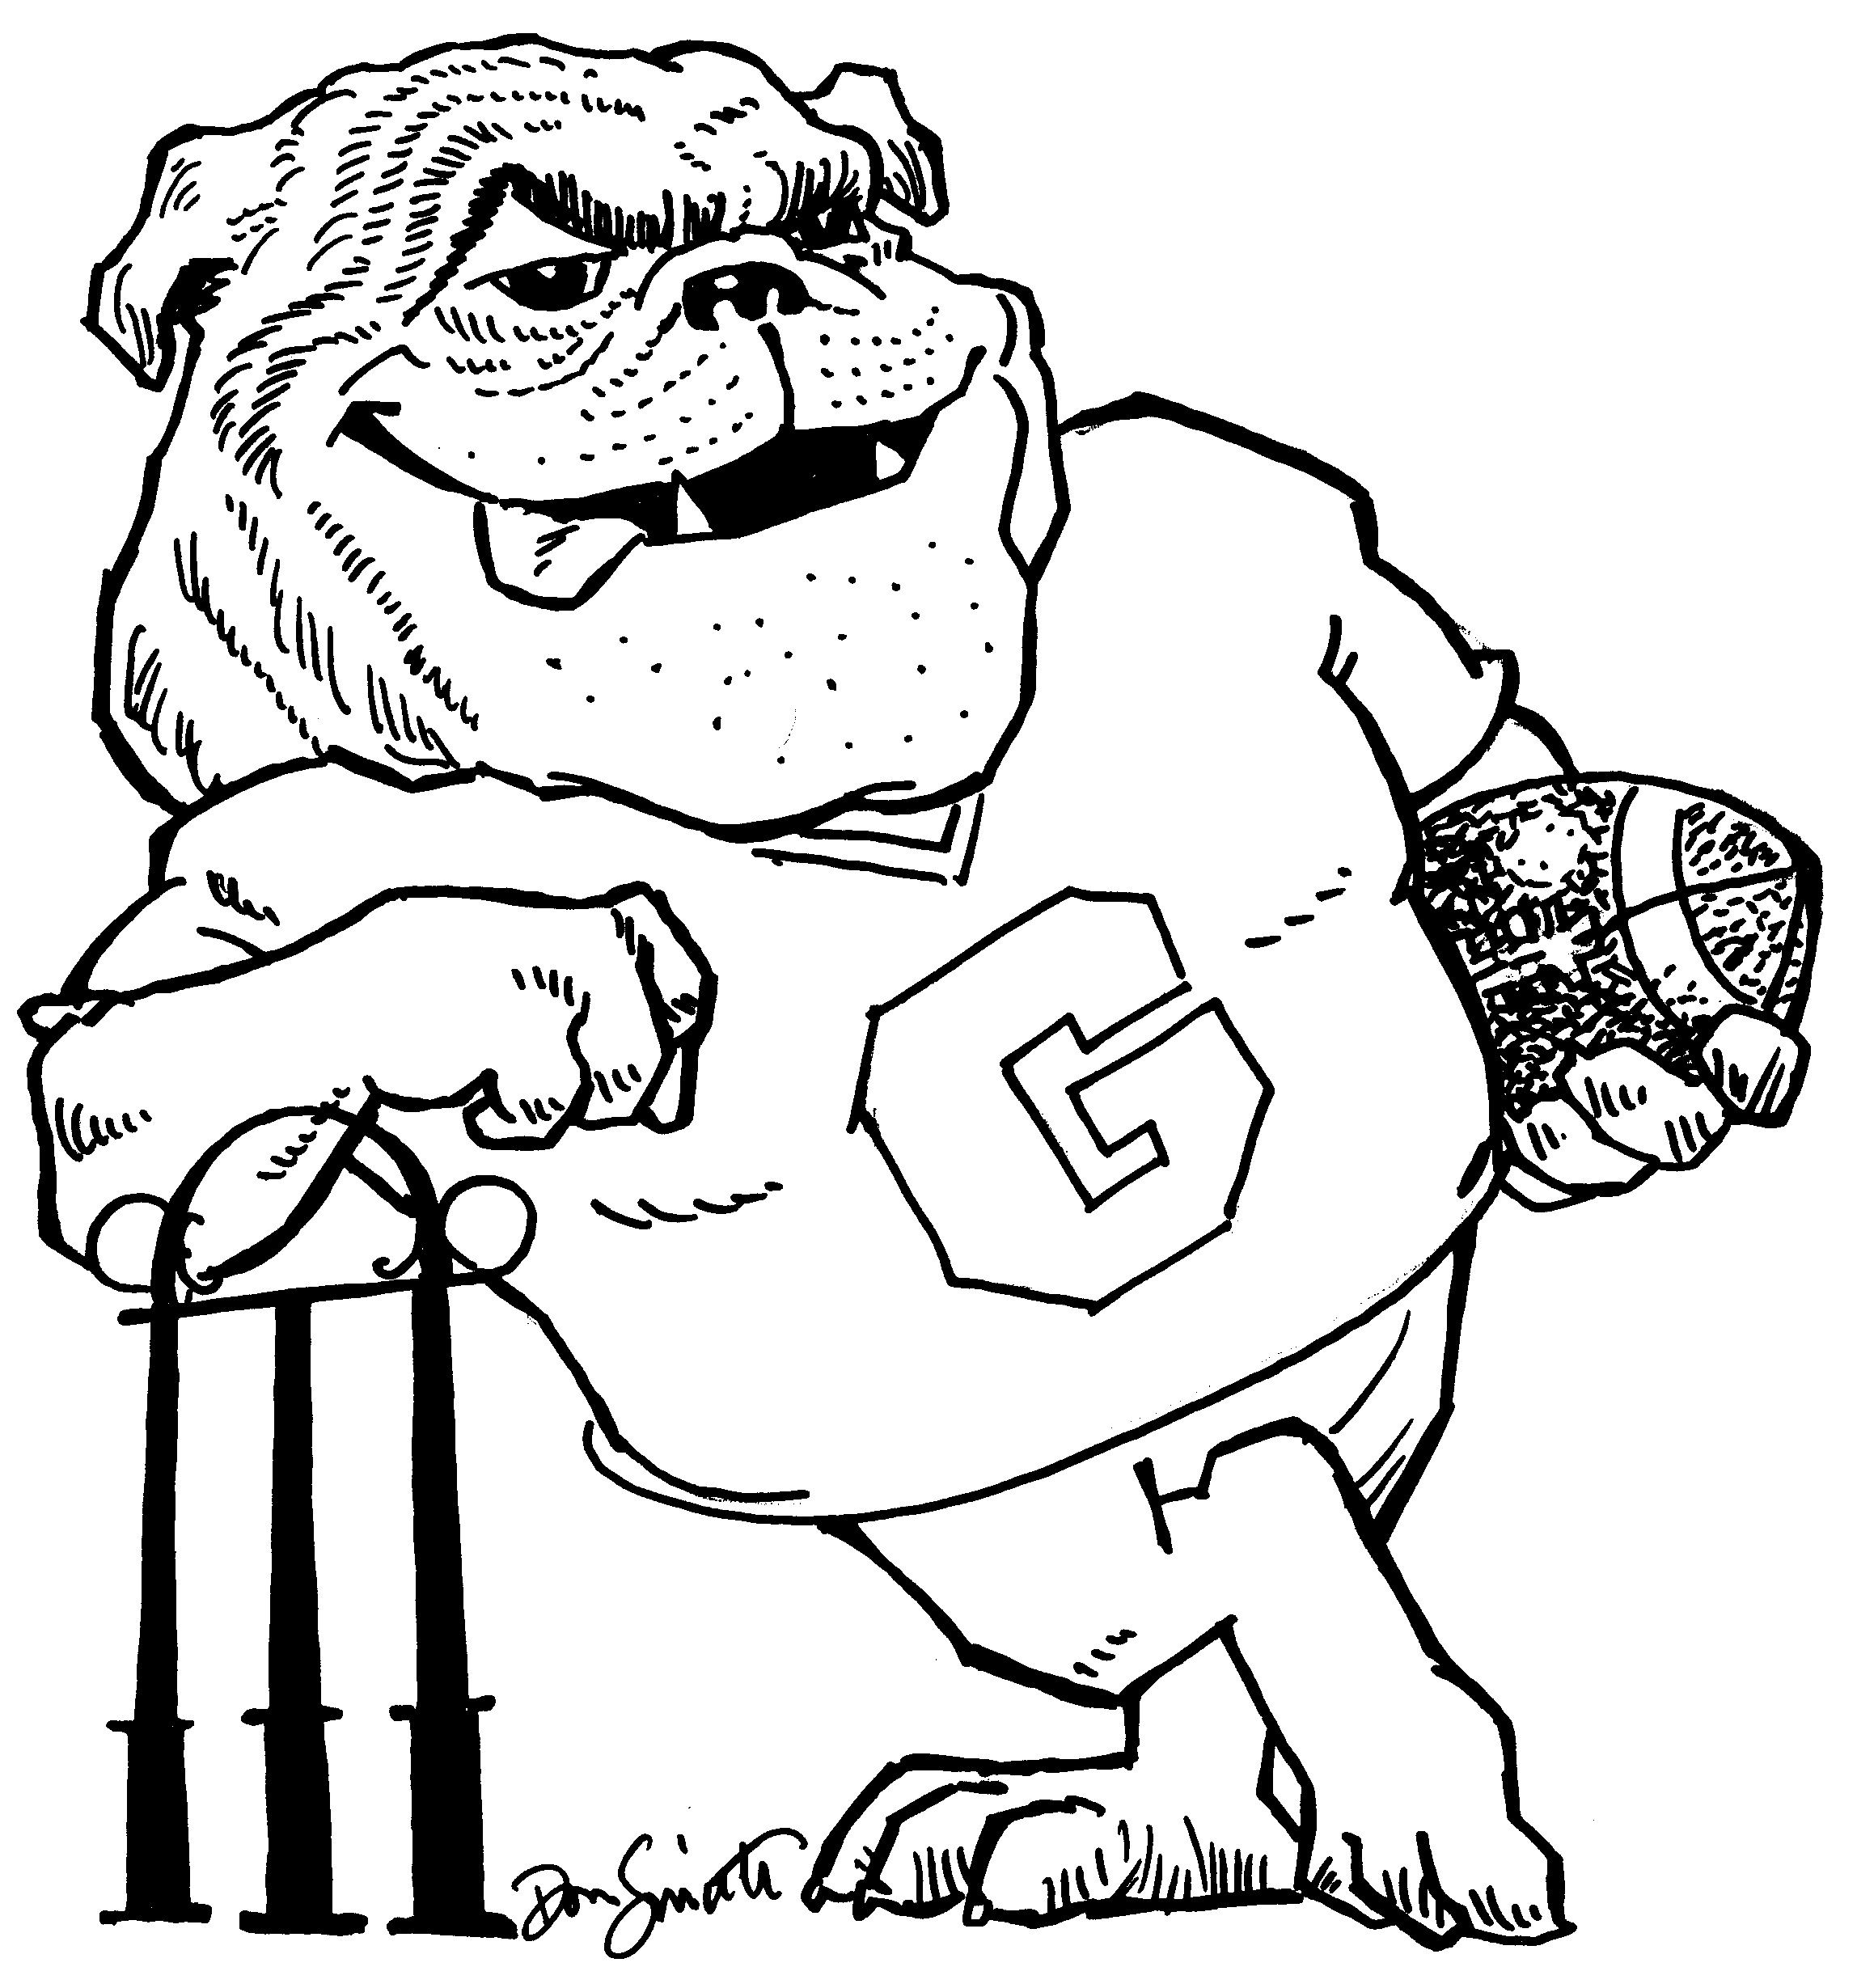 Bulldog clipart coloring page. Simple free printable pages